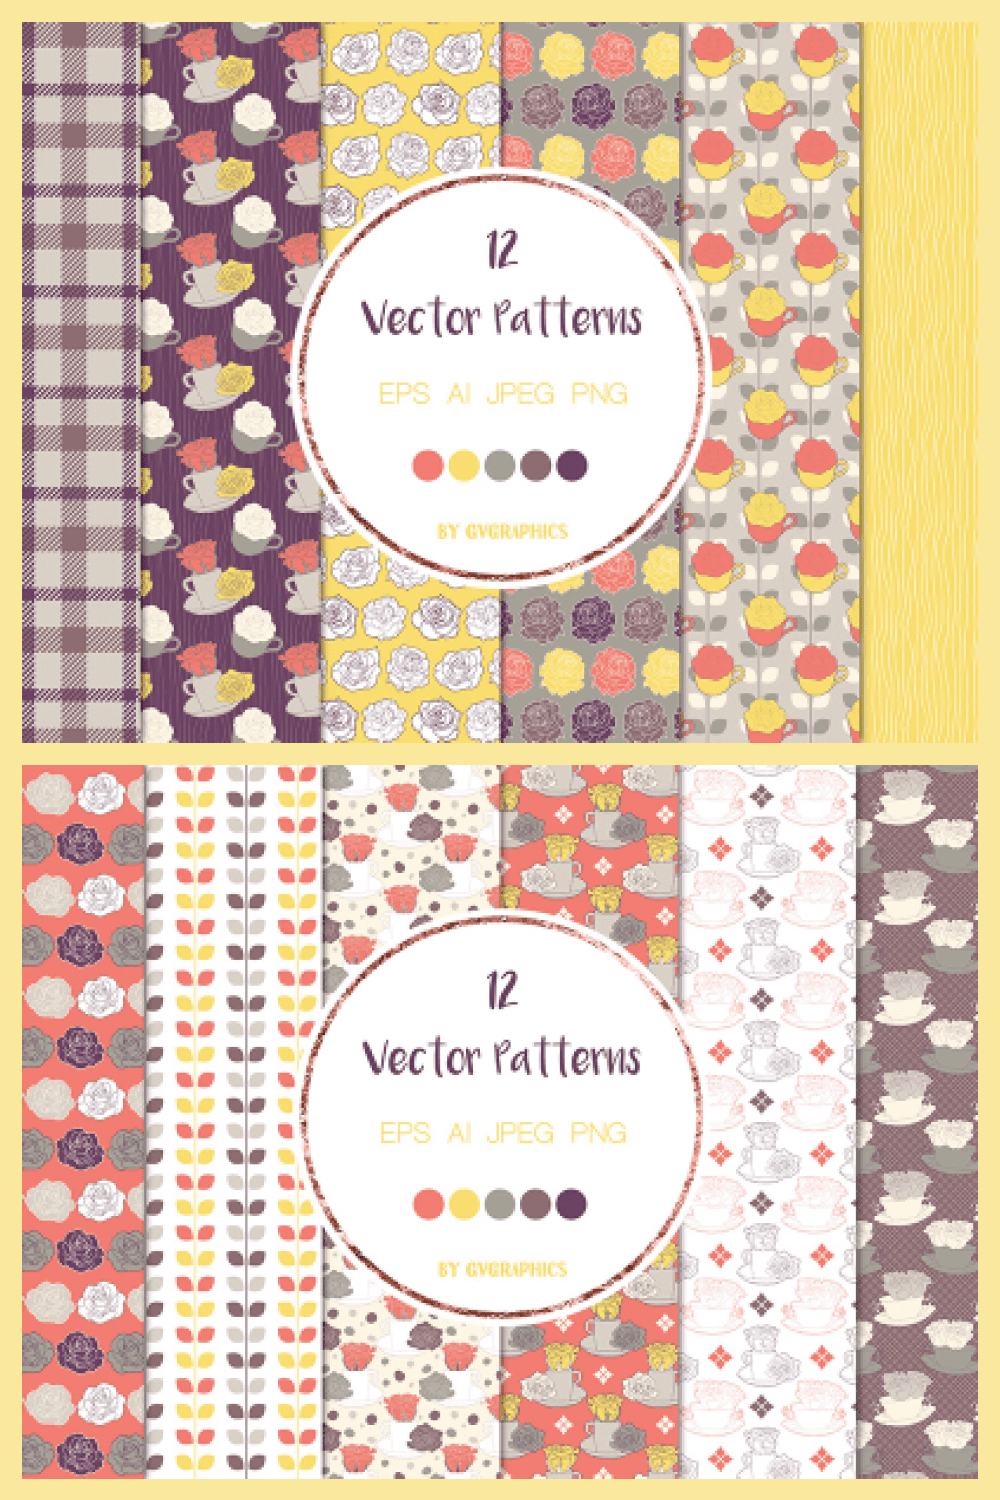 Roses and Tea Cups Vector Patterns and Seamless Tiles - MasterBundles - Pinterest Collage Image.